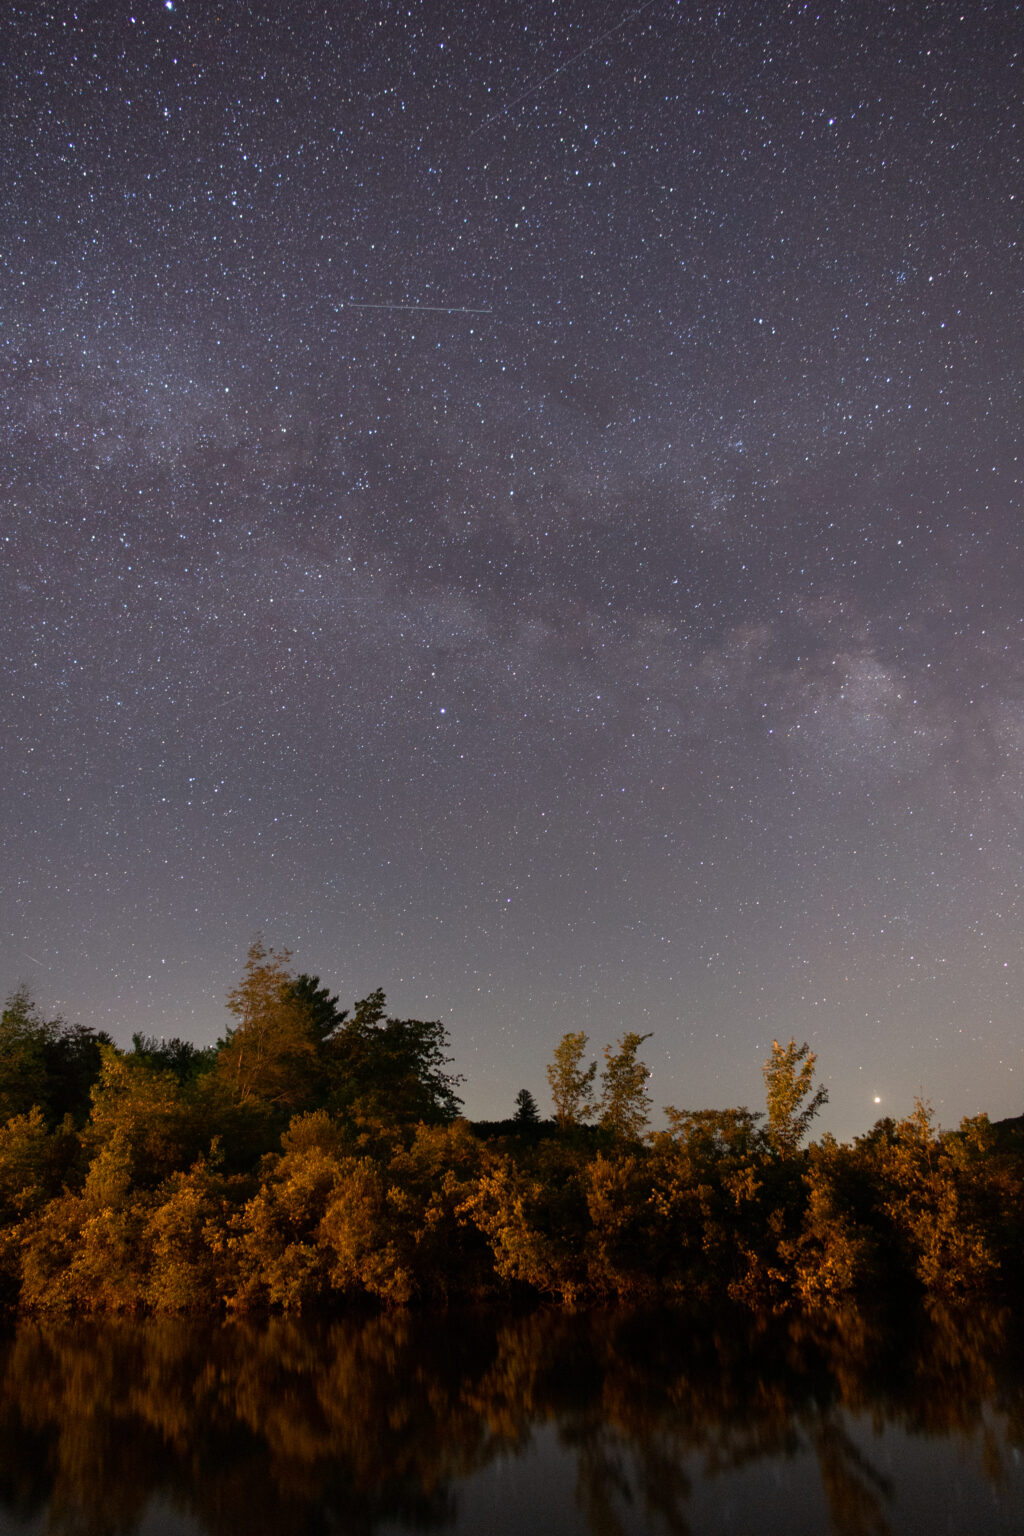 Milky Way Over Trees and Water